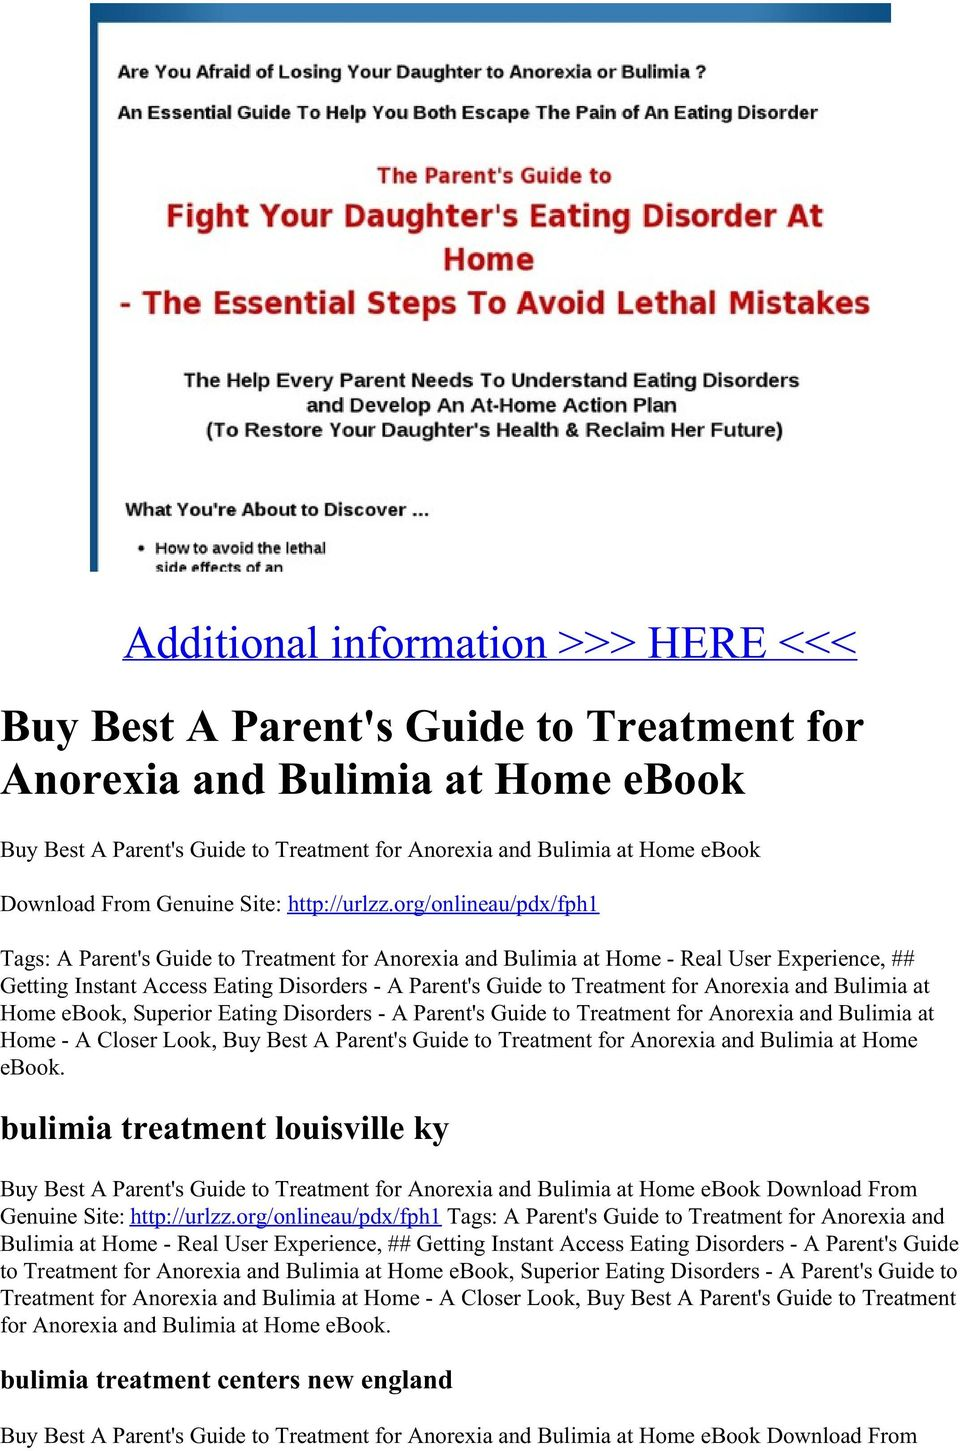 org/onlineau/pdx/fph1 Tags: A Parent's Guide to Treatment for Anorexia and Bulimia at Home - Real User Experience, ## Getting Instant Access Eating Disorders - A Parent's Guide to Treatment for